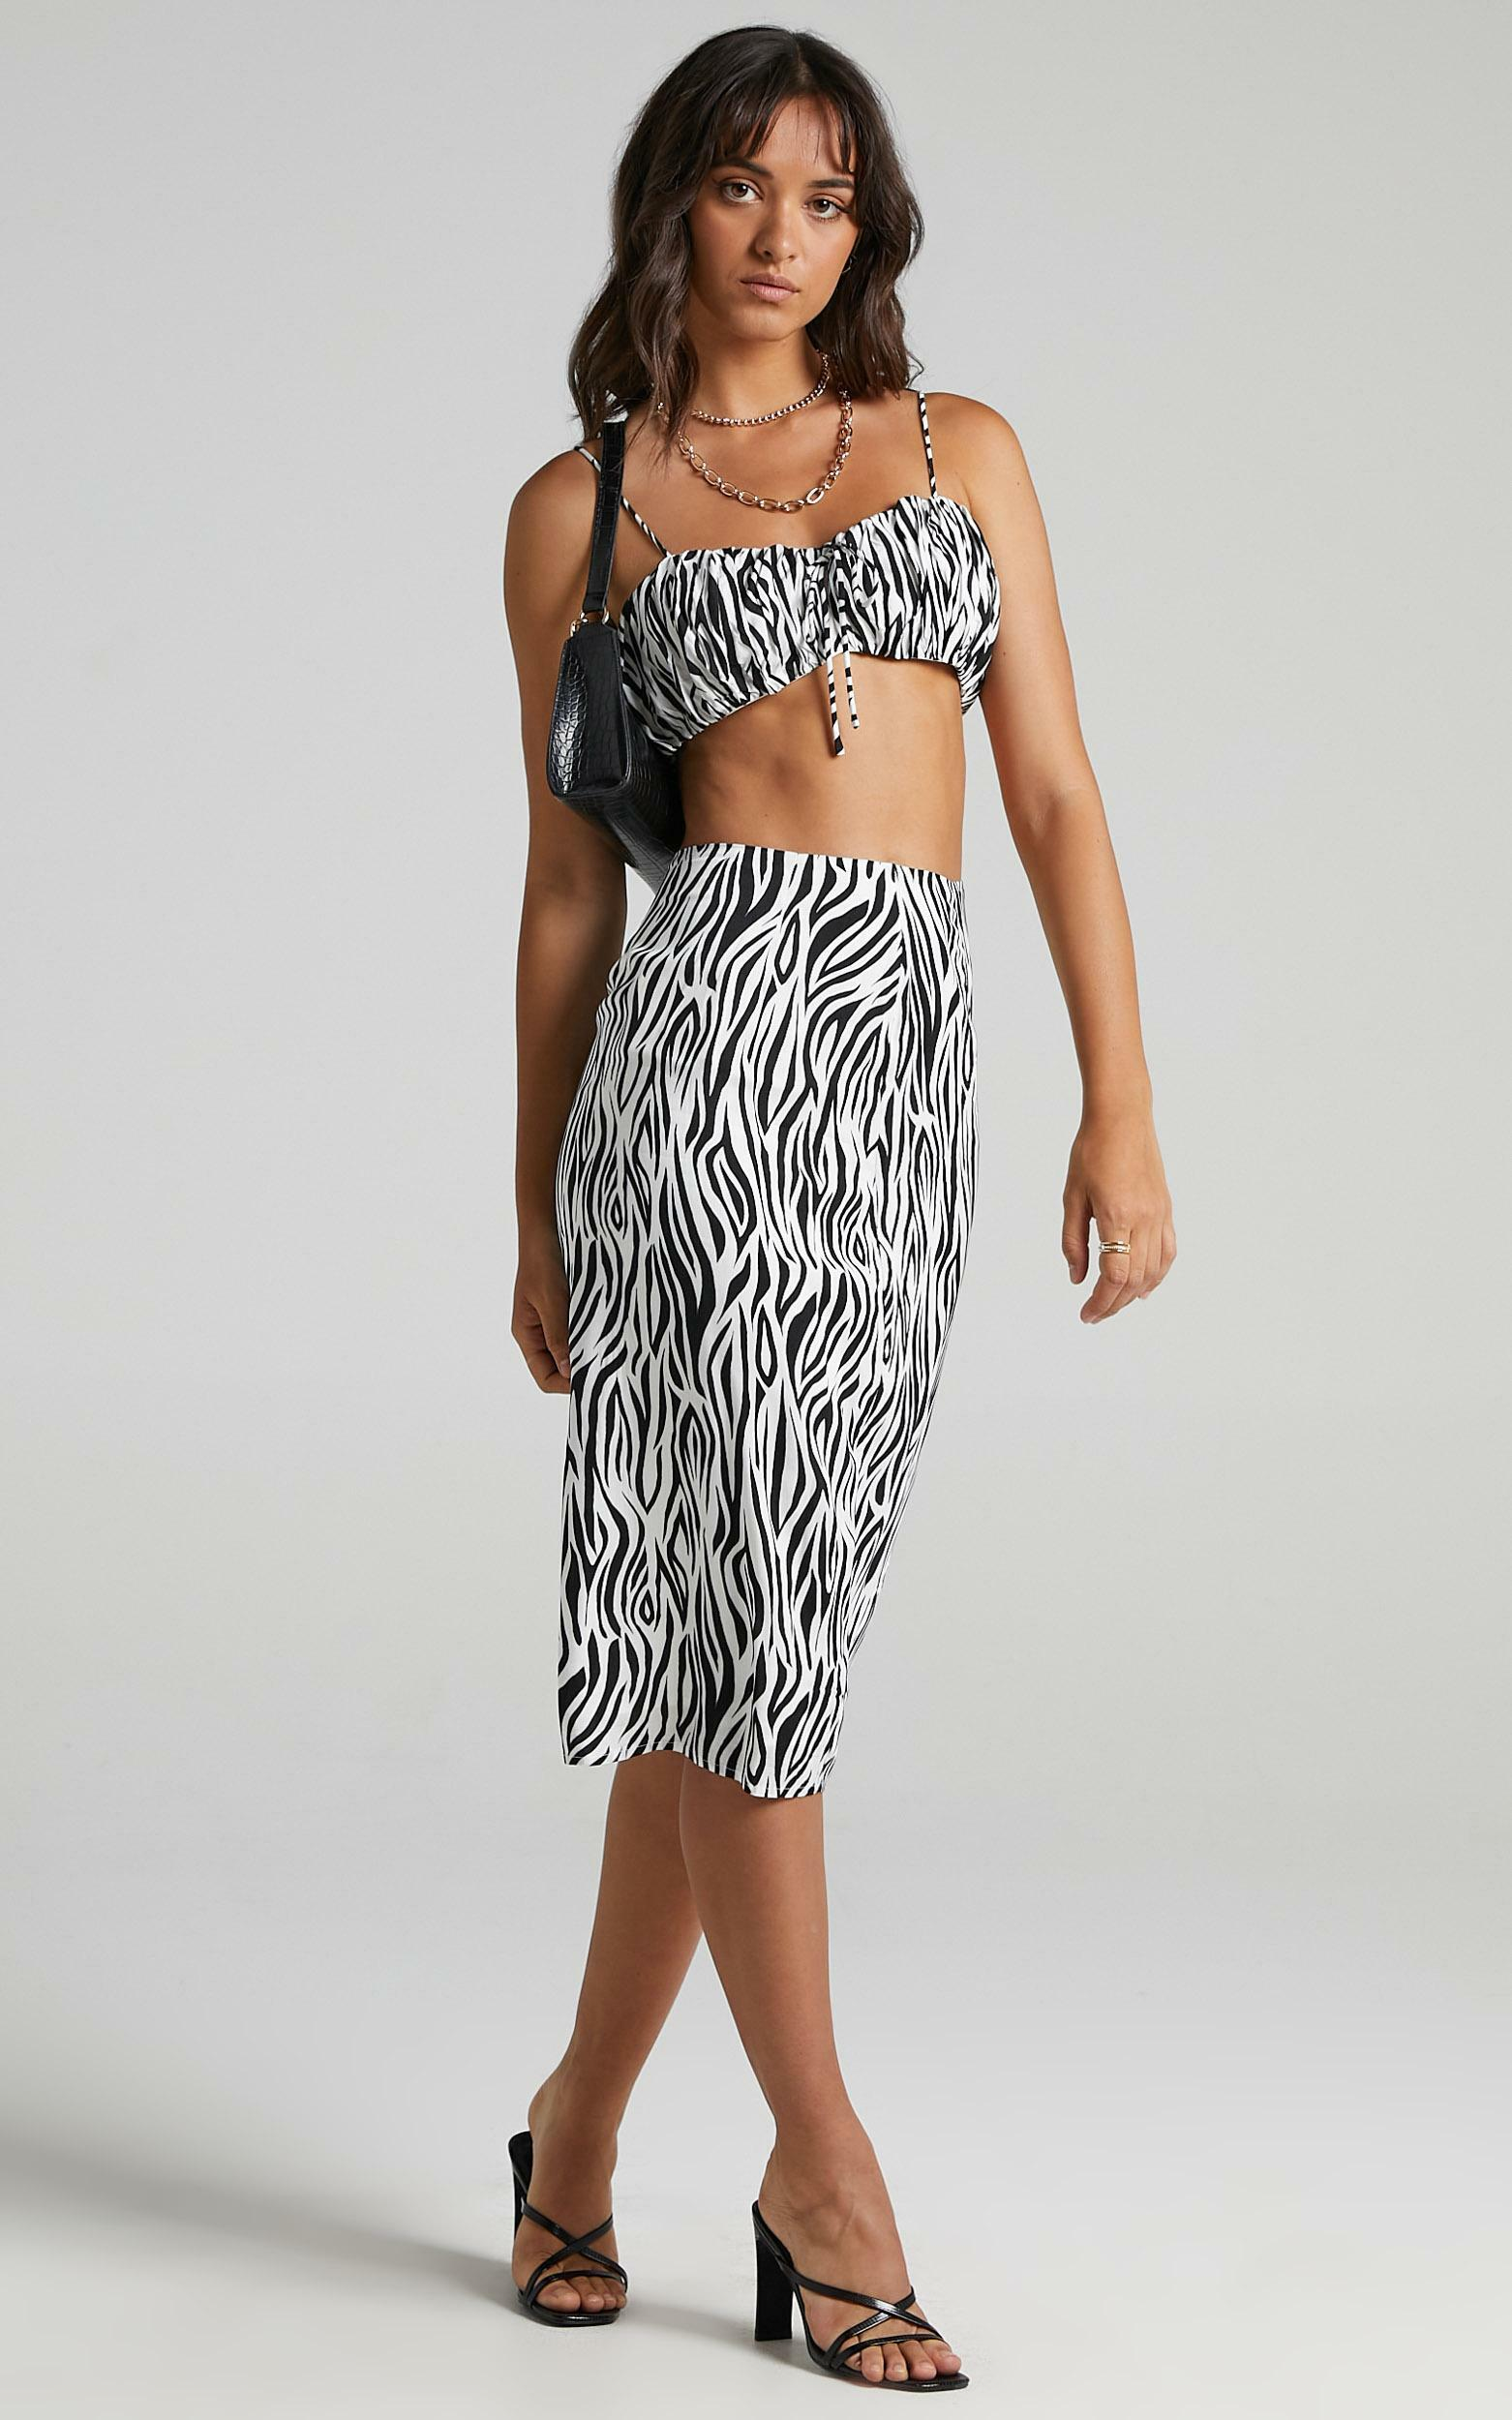 Uberta Two Piece Set in Monochrome Zebra - 08, MLT1, hi-res image number null